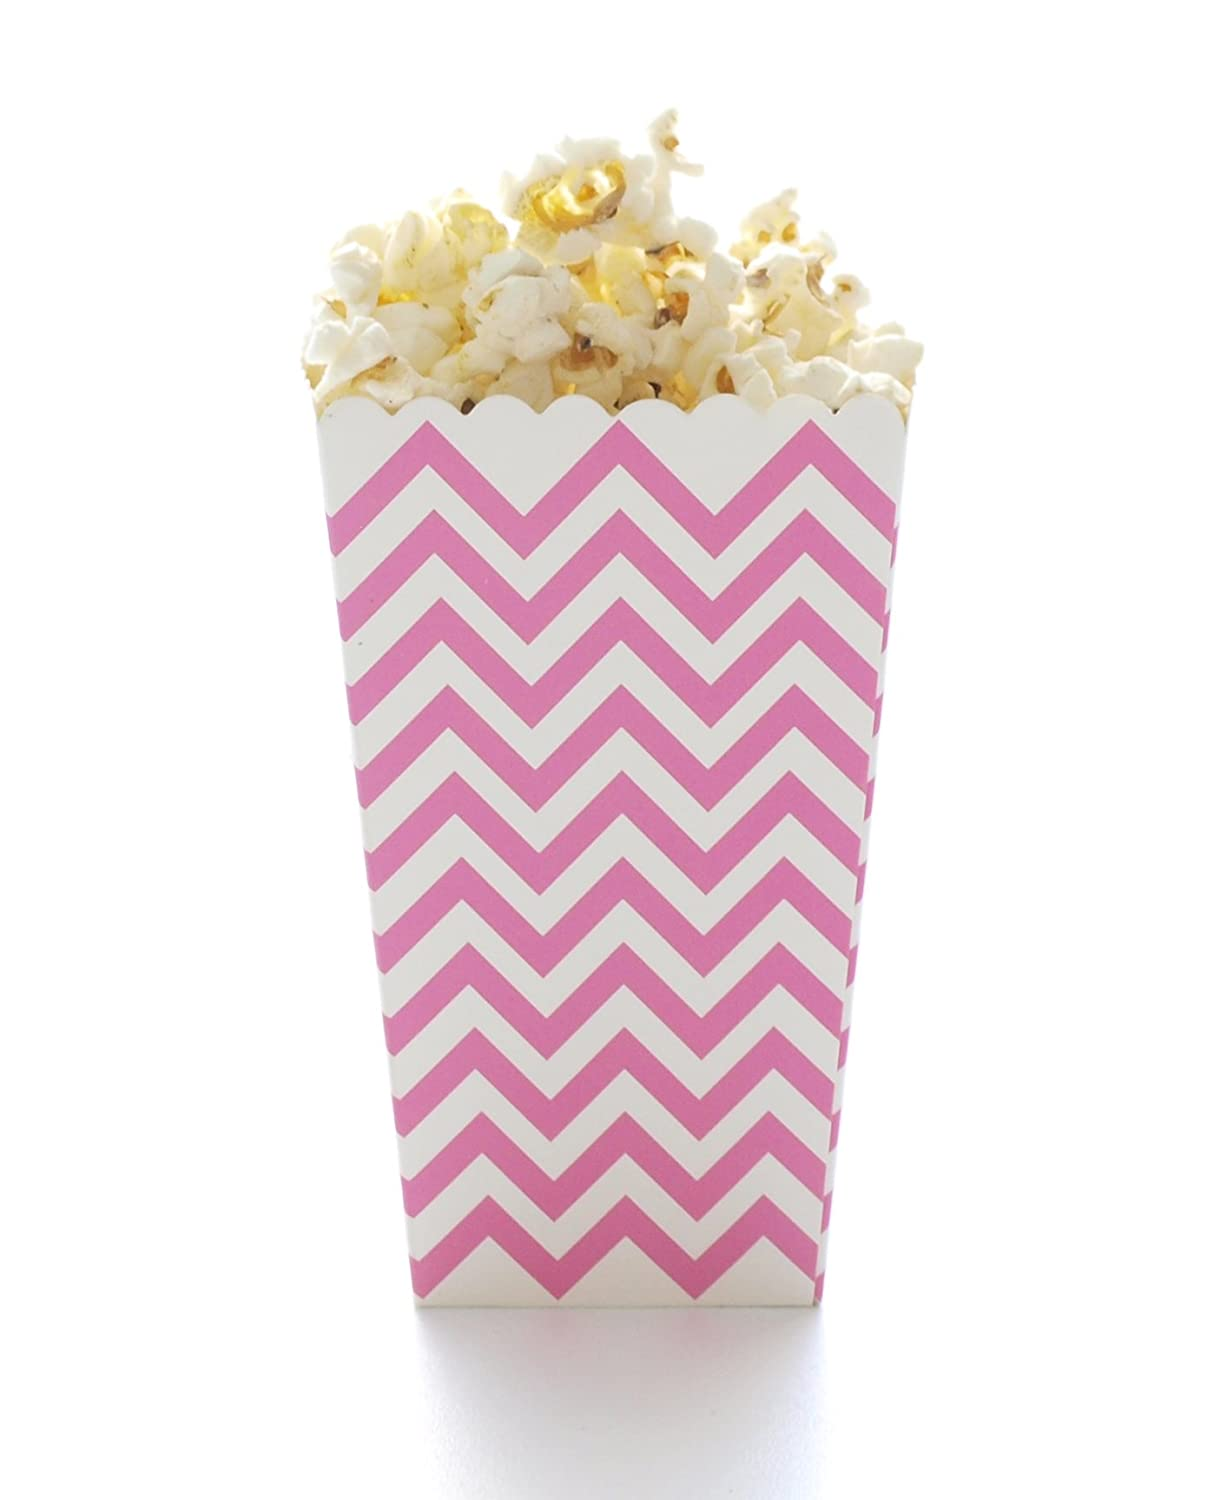 Amazon.com: Pink Chevron Popcorn Boxes, Hot Pink (12 Pack) - Zigzag ...